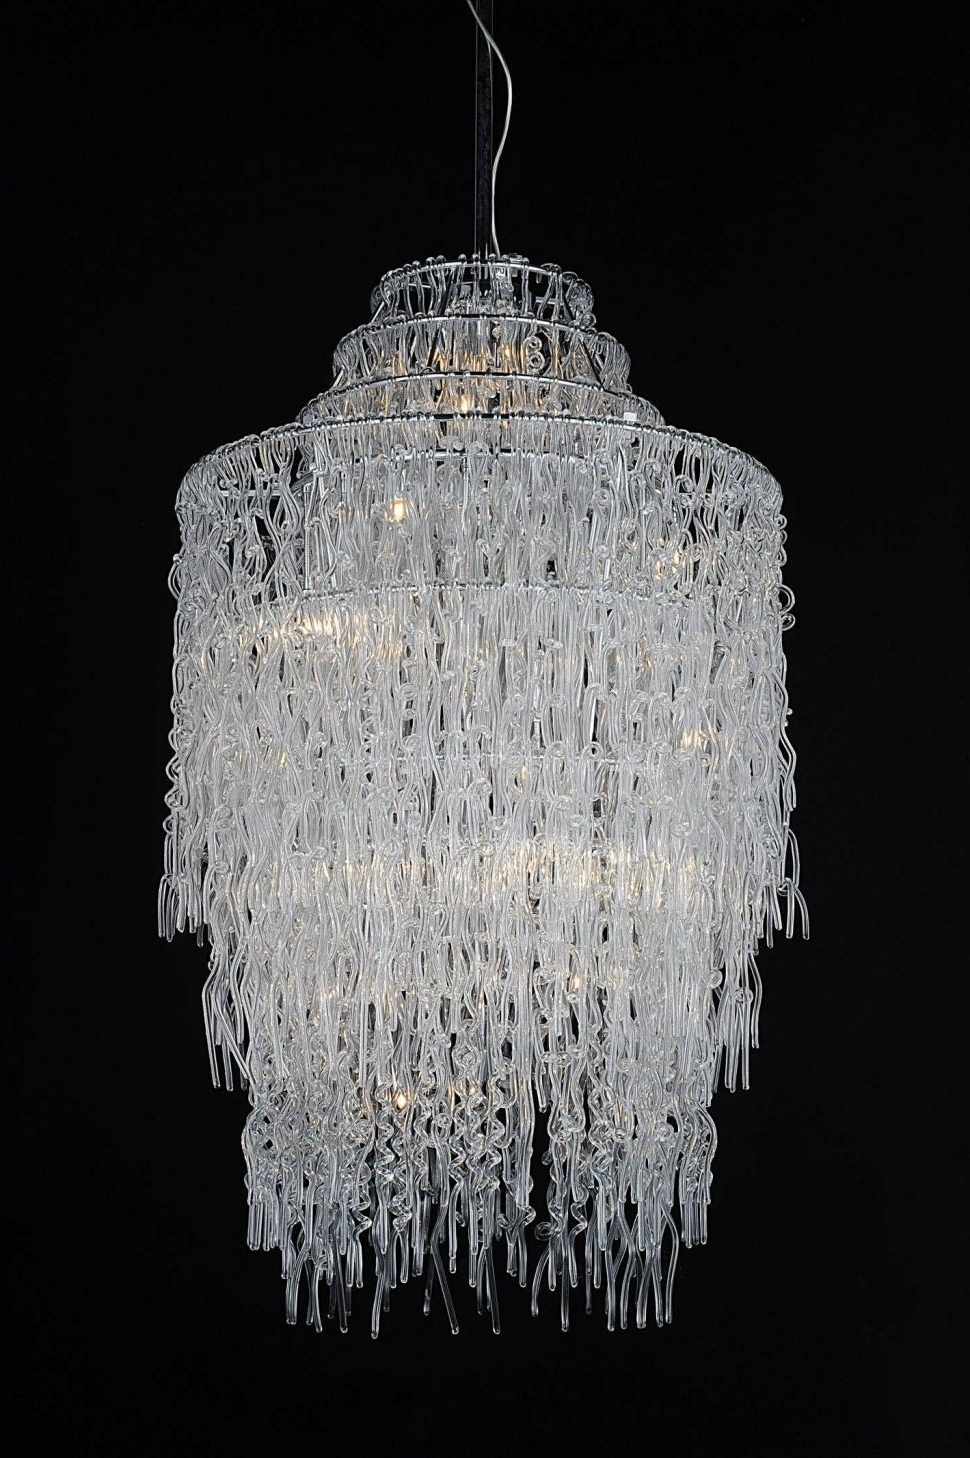 Traditional Chandeliers In Most Popular Chandeliers : Traditional Chandeliers Beautiful Chandelier (View 8 of 15)